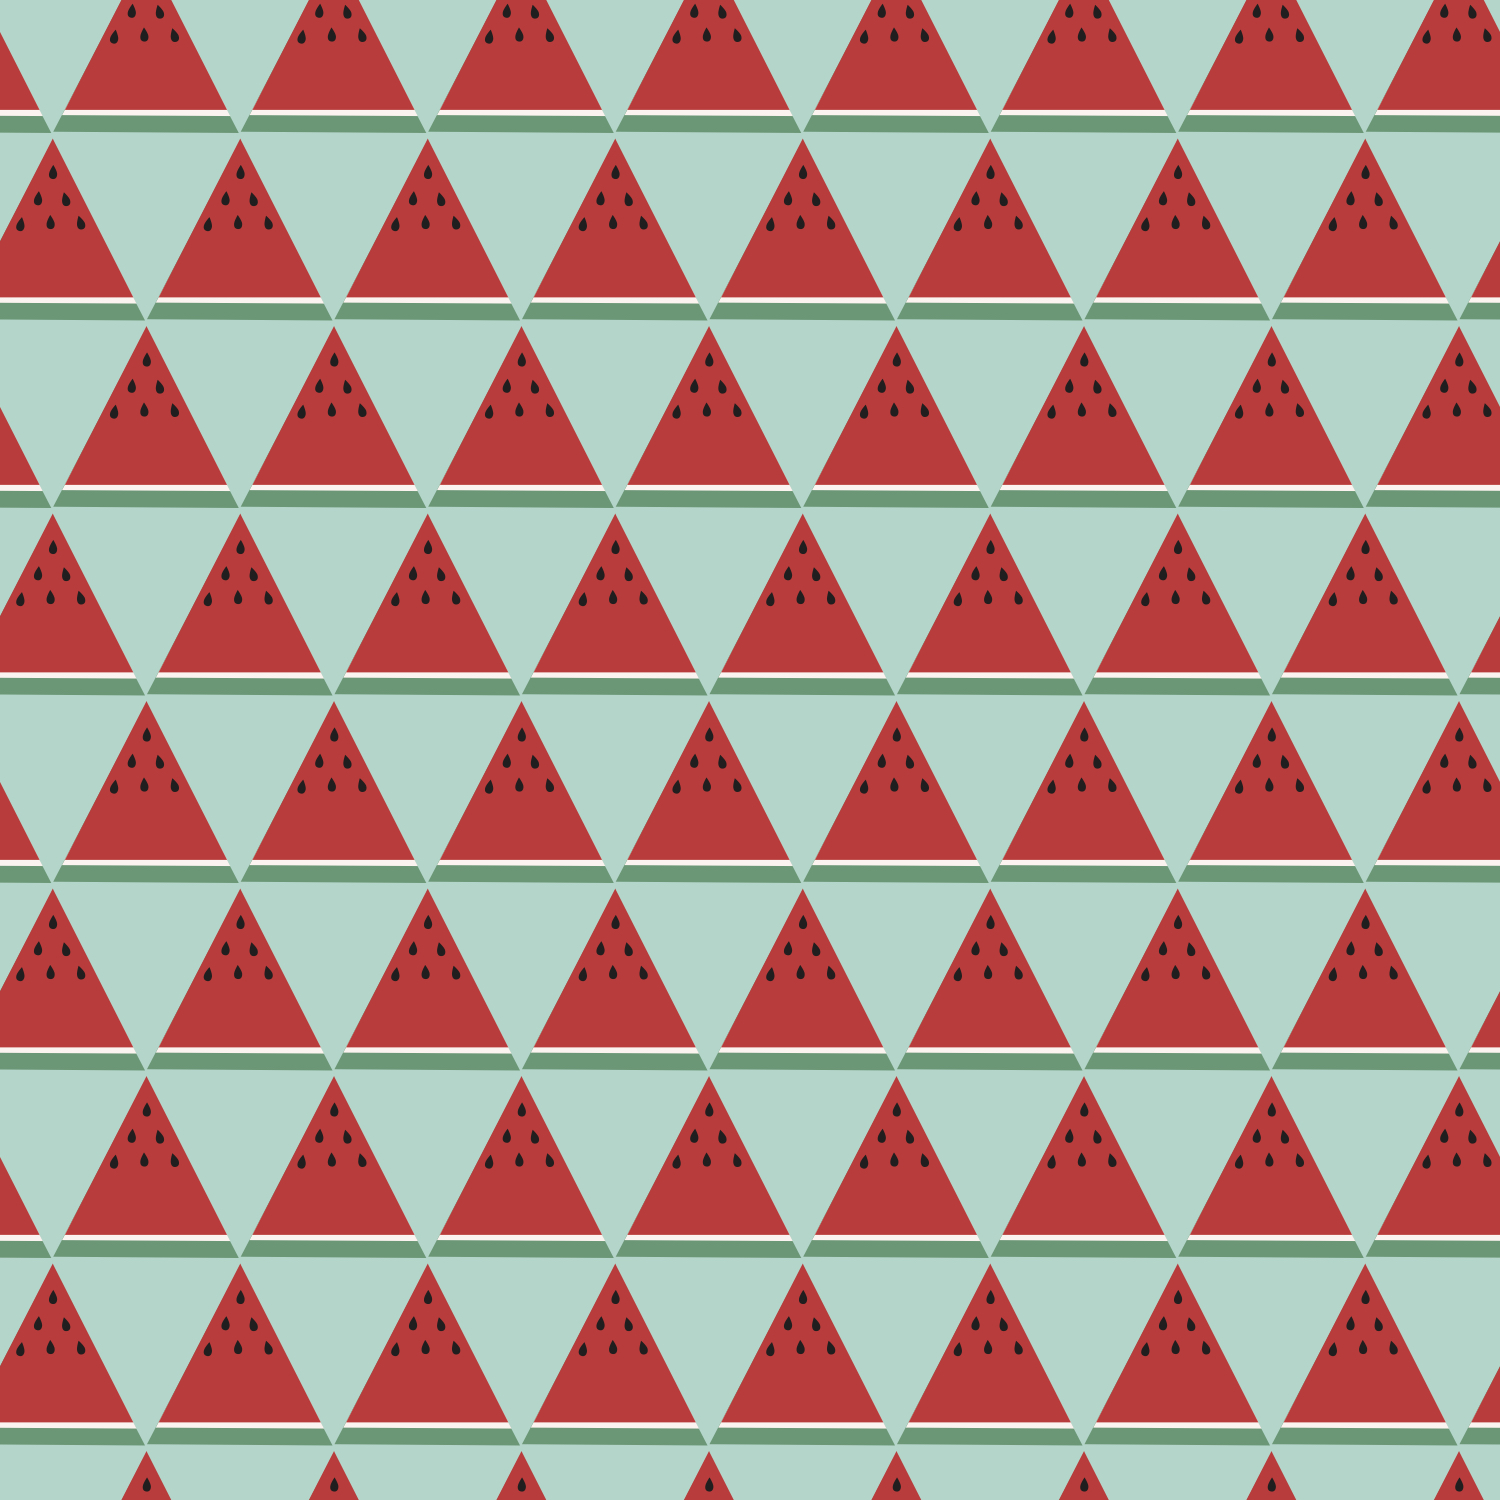 abstract watermelons seamless repeat